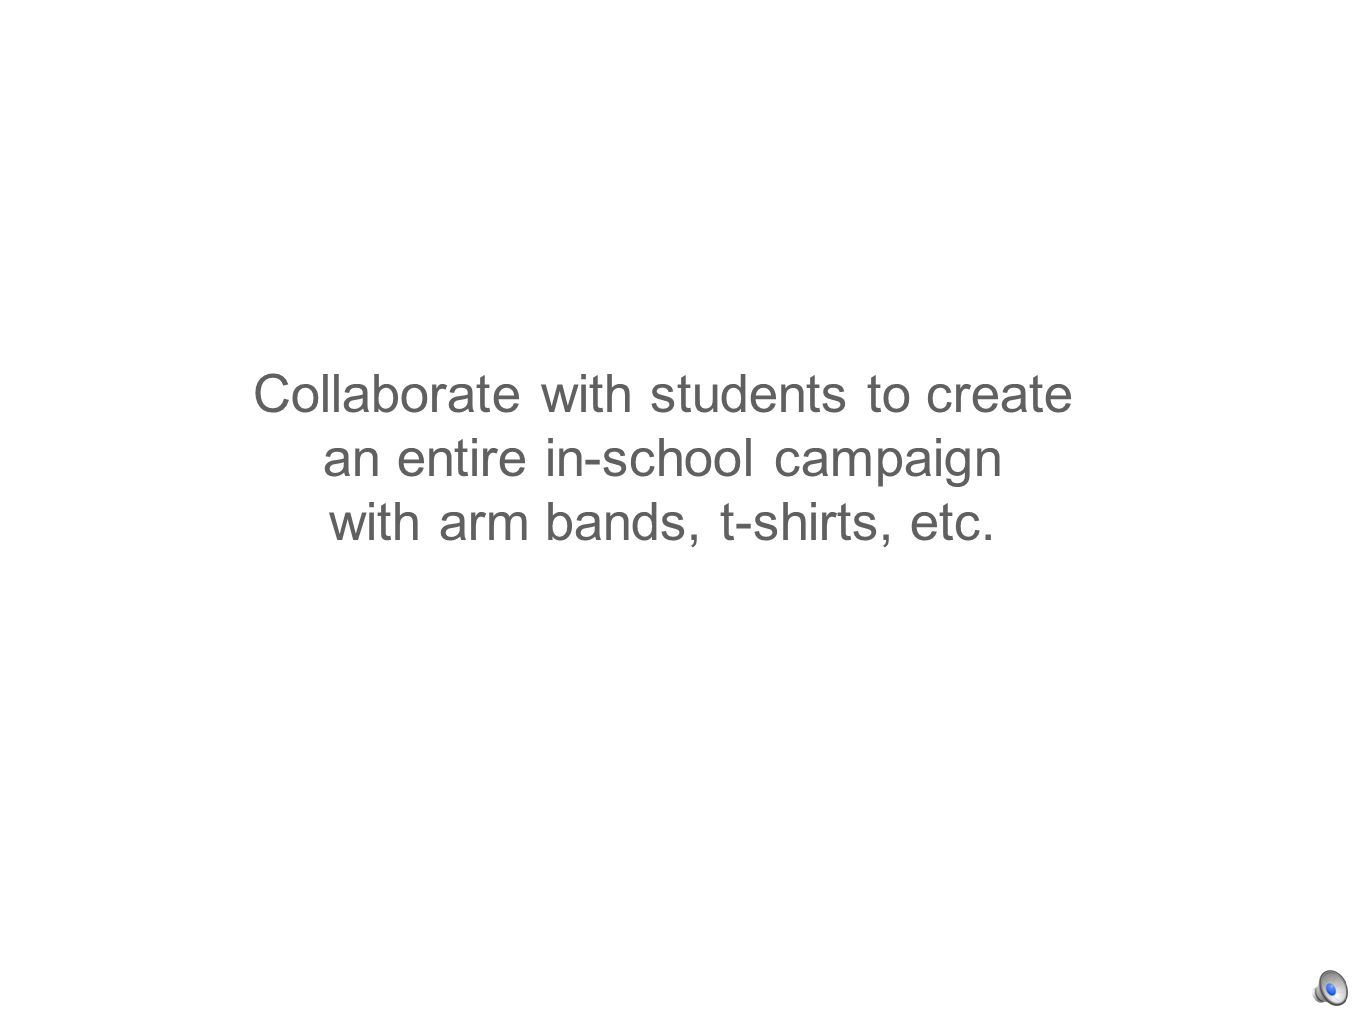 Collaborate with students to create an entire in-school campaign with arm bands, t-shirts, etc.